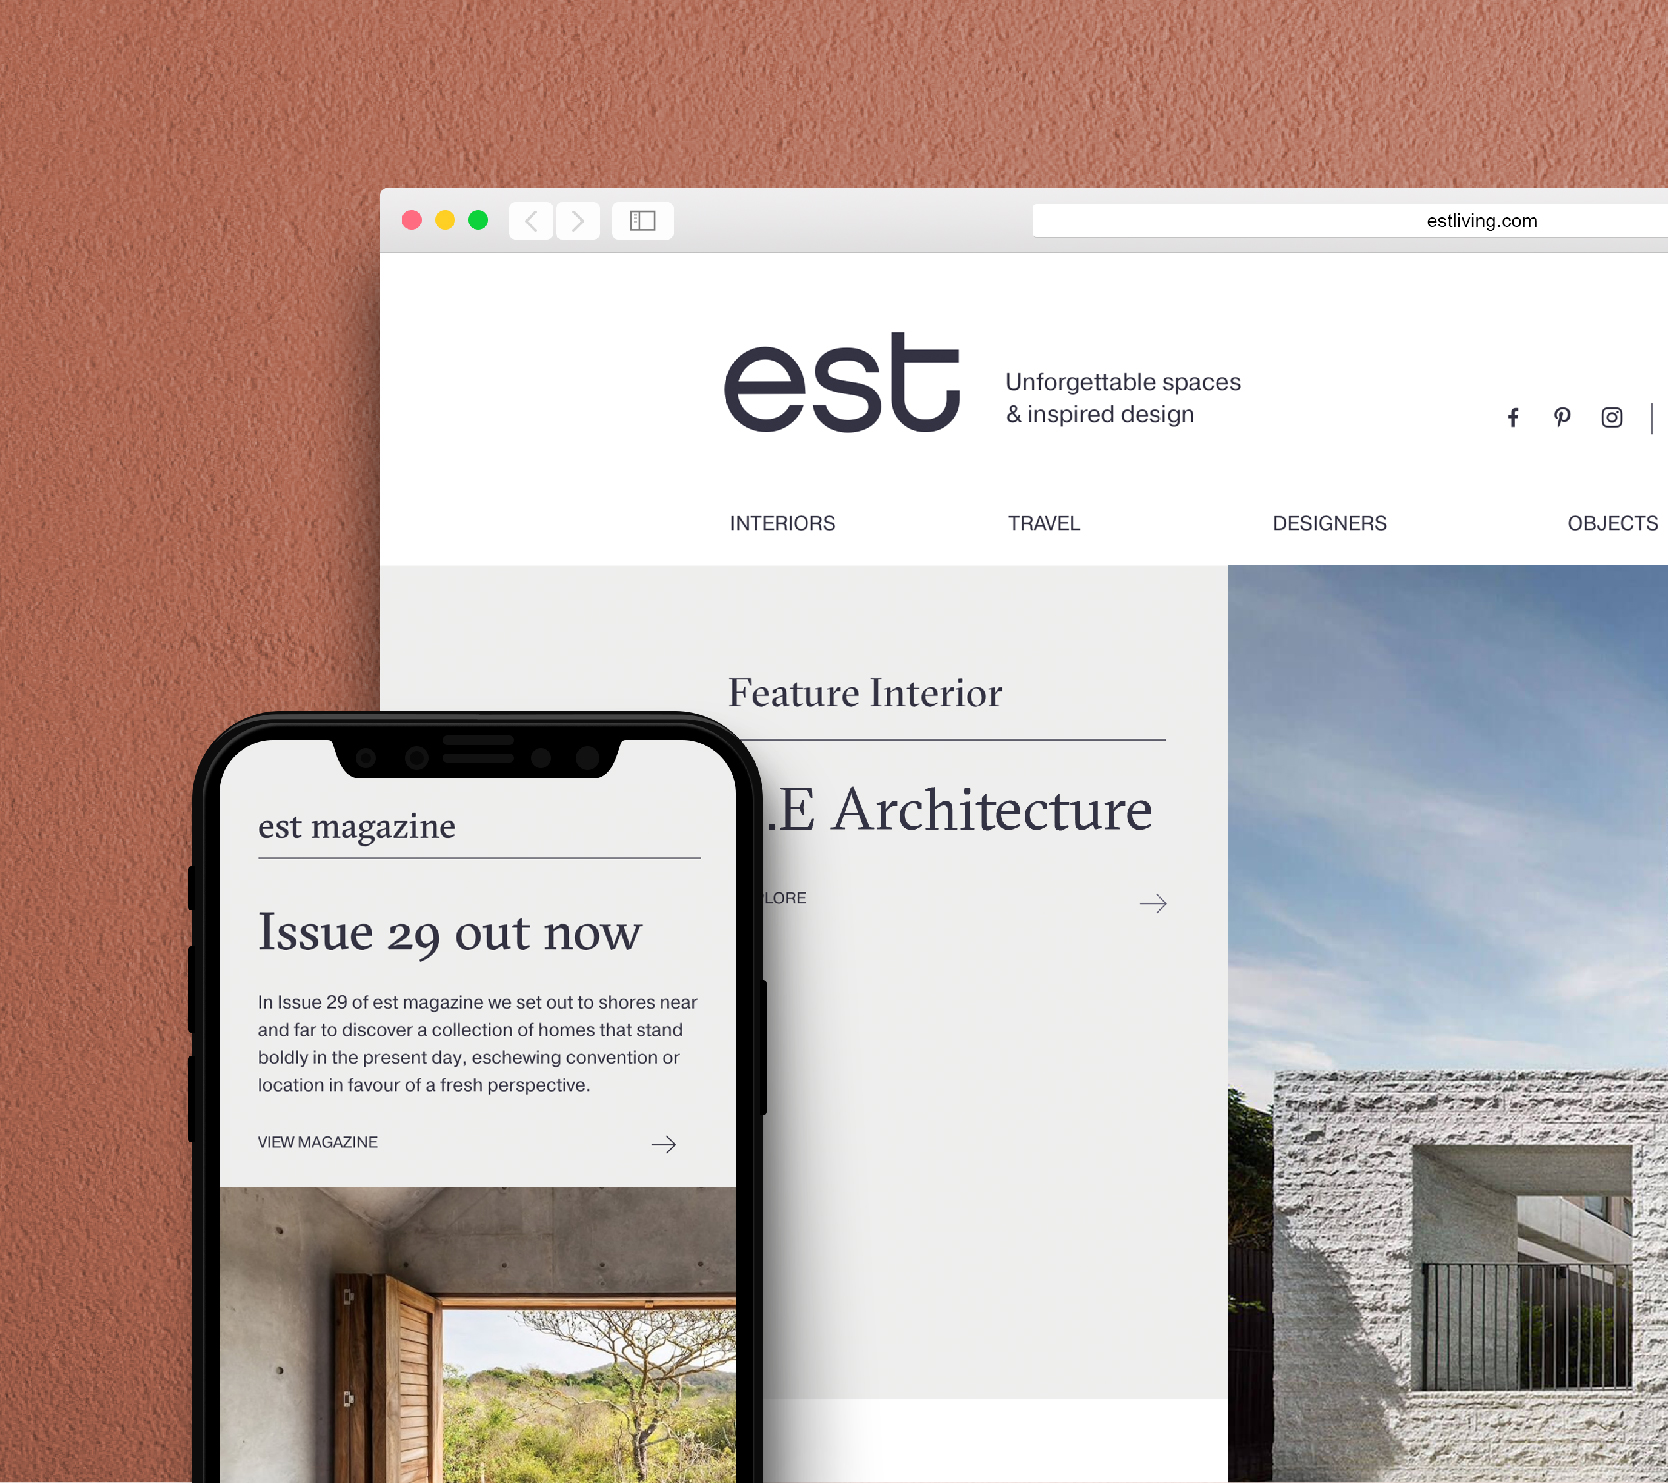 est website, desktop and mobile view